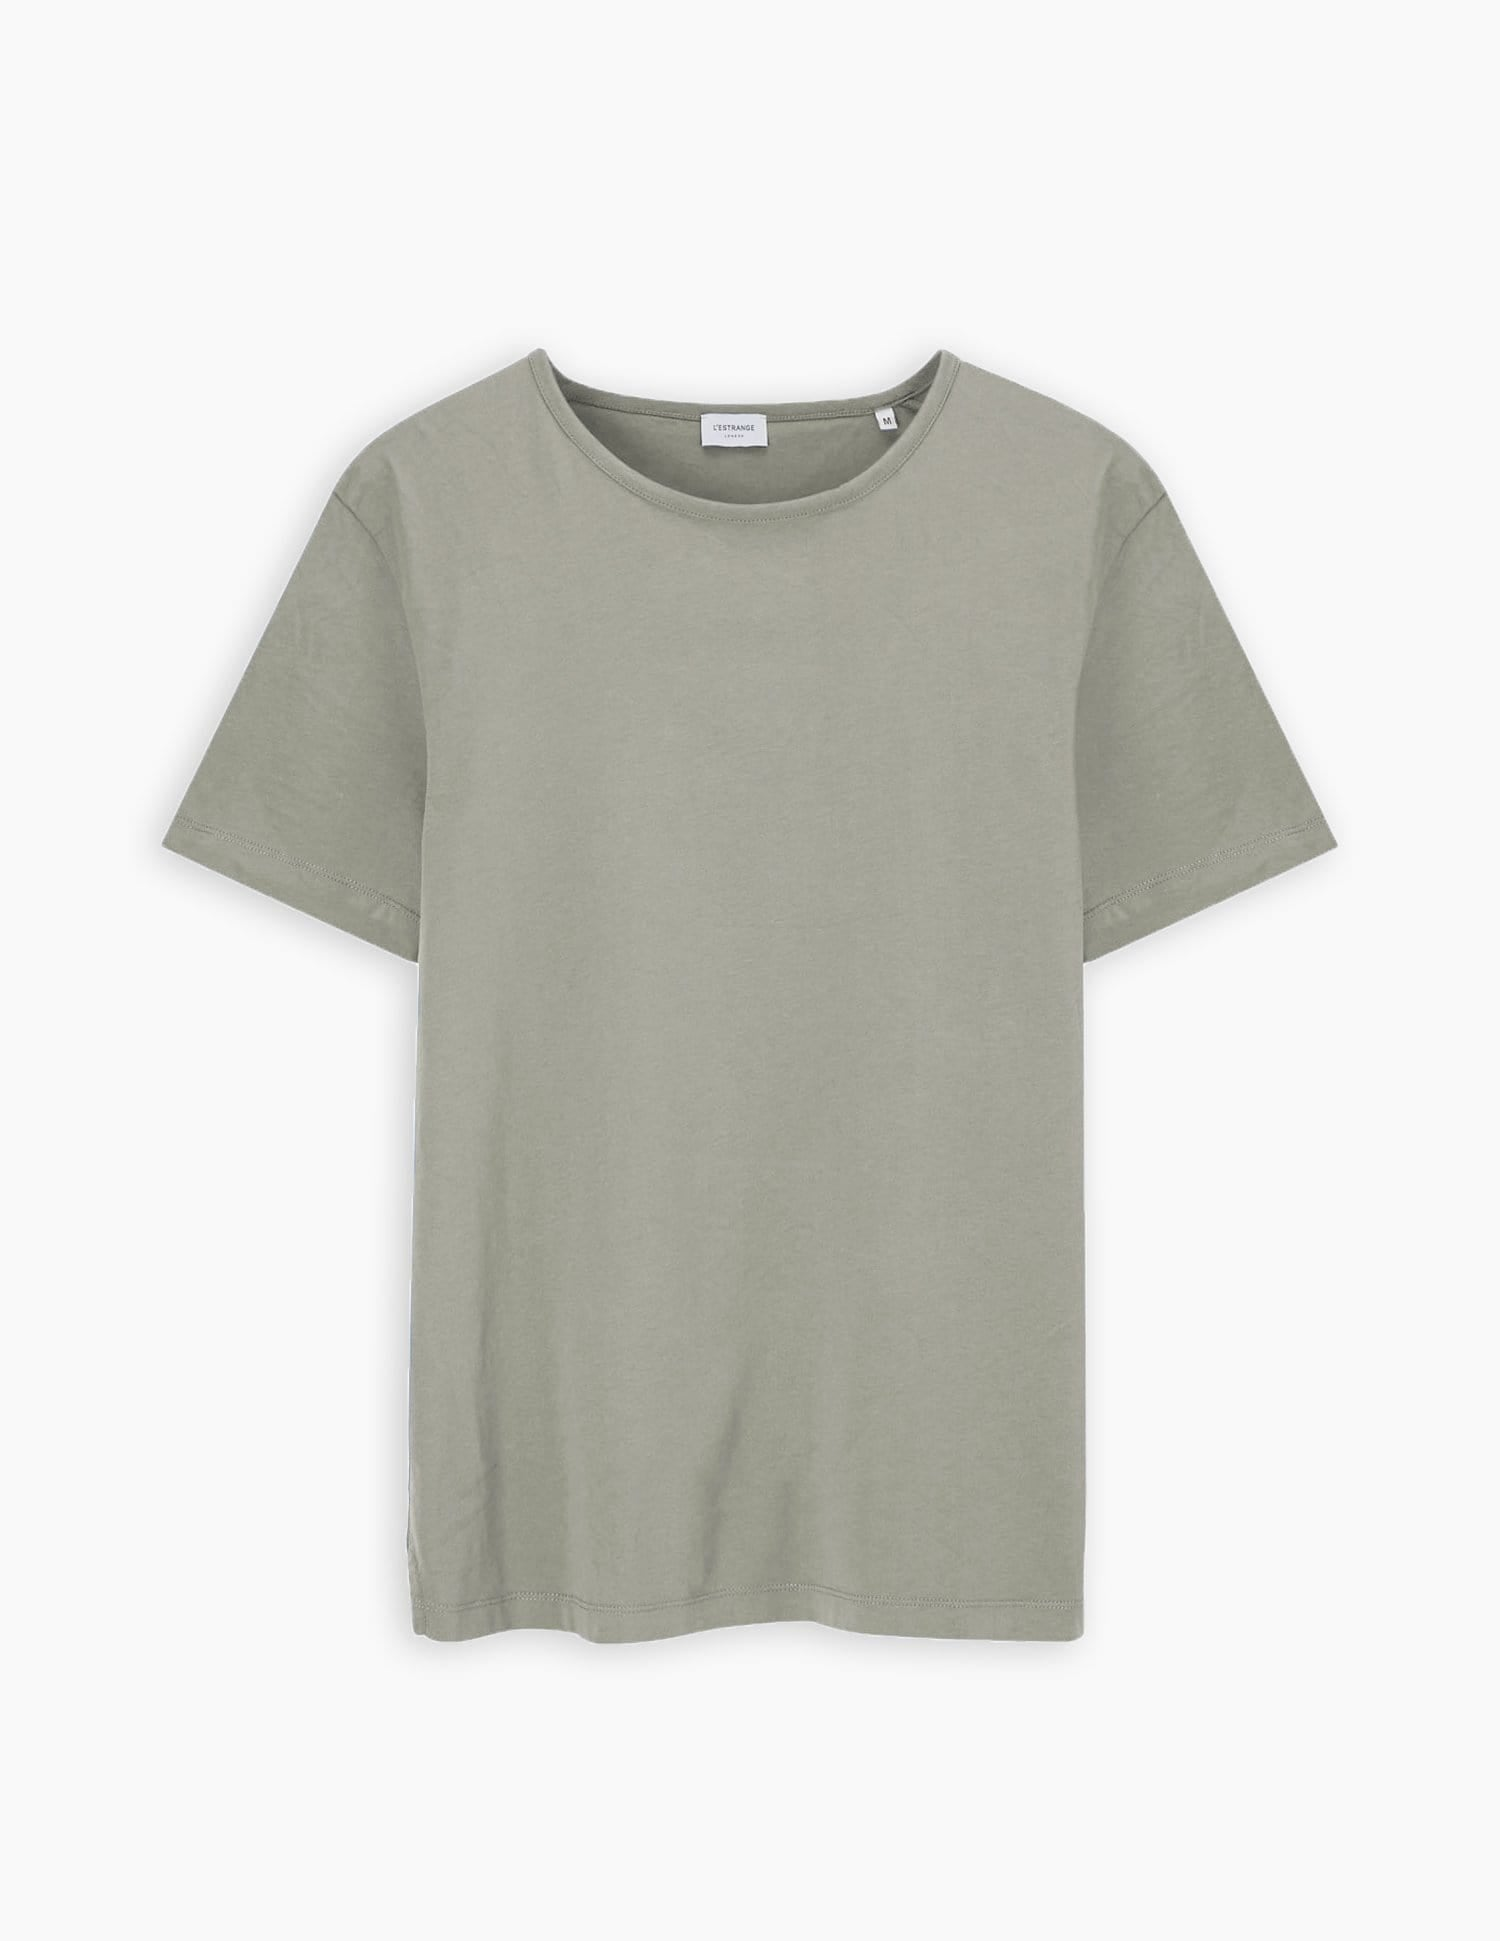 The Tailored Tee Organic || Sage | Organic Cotton